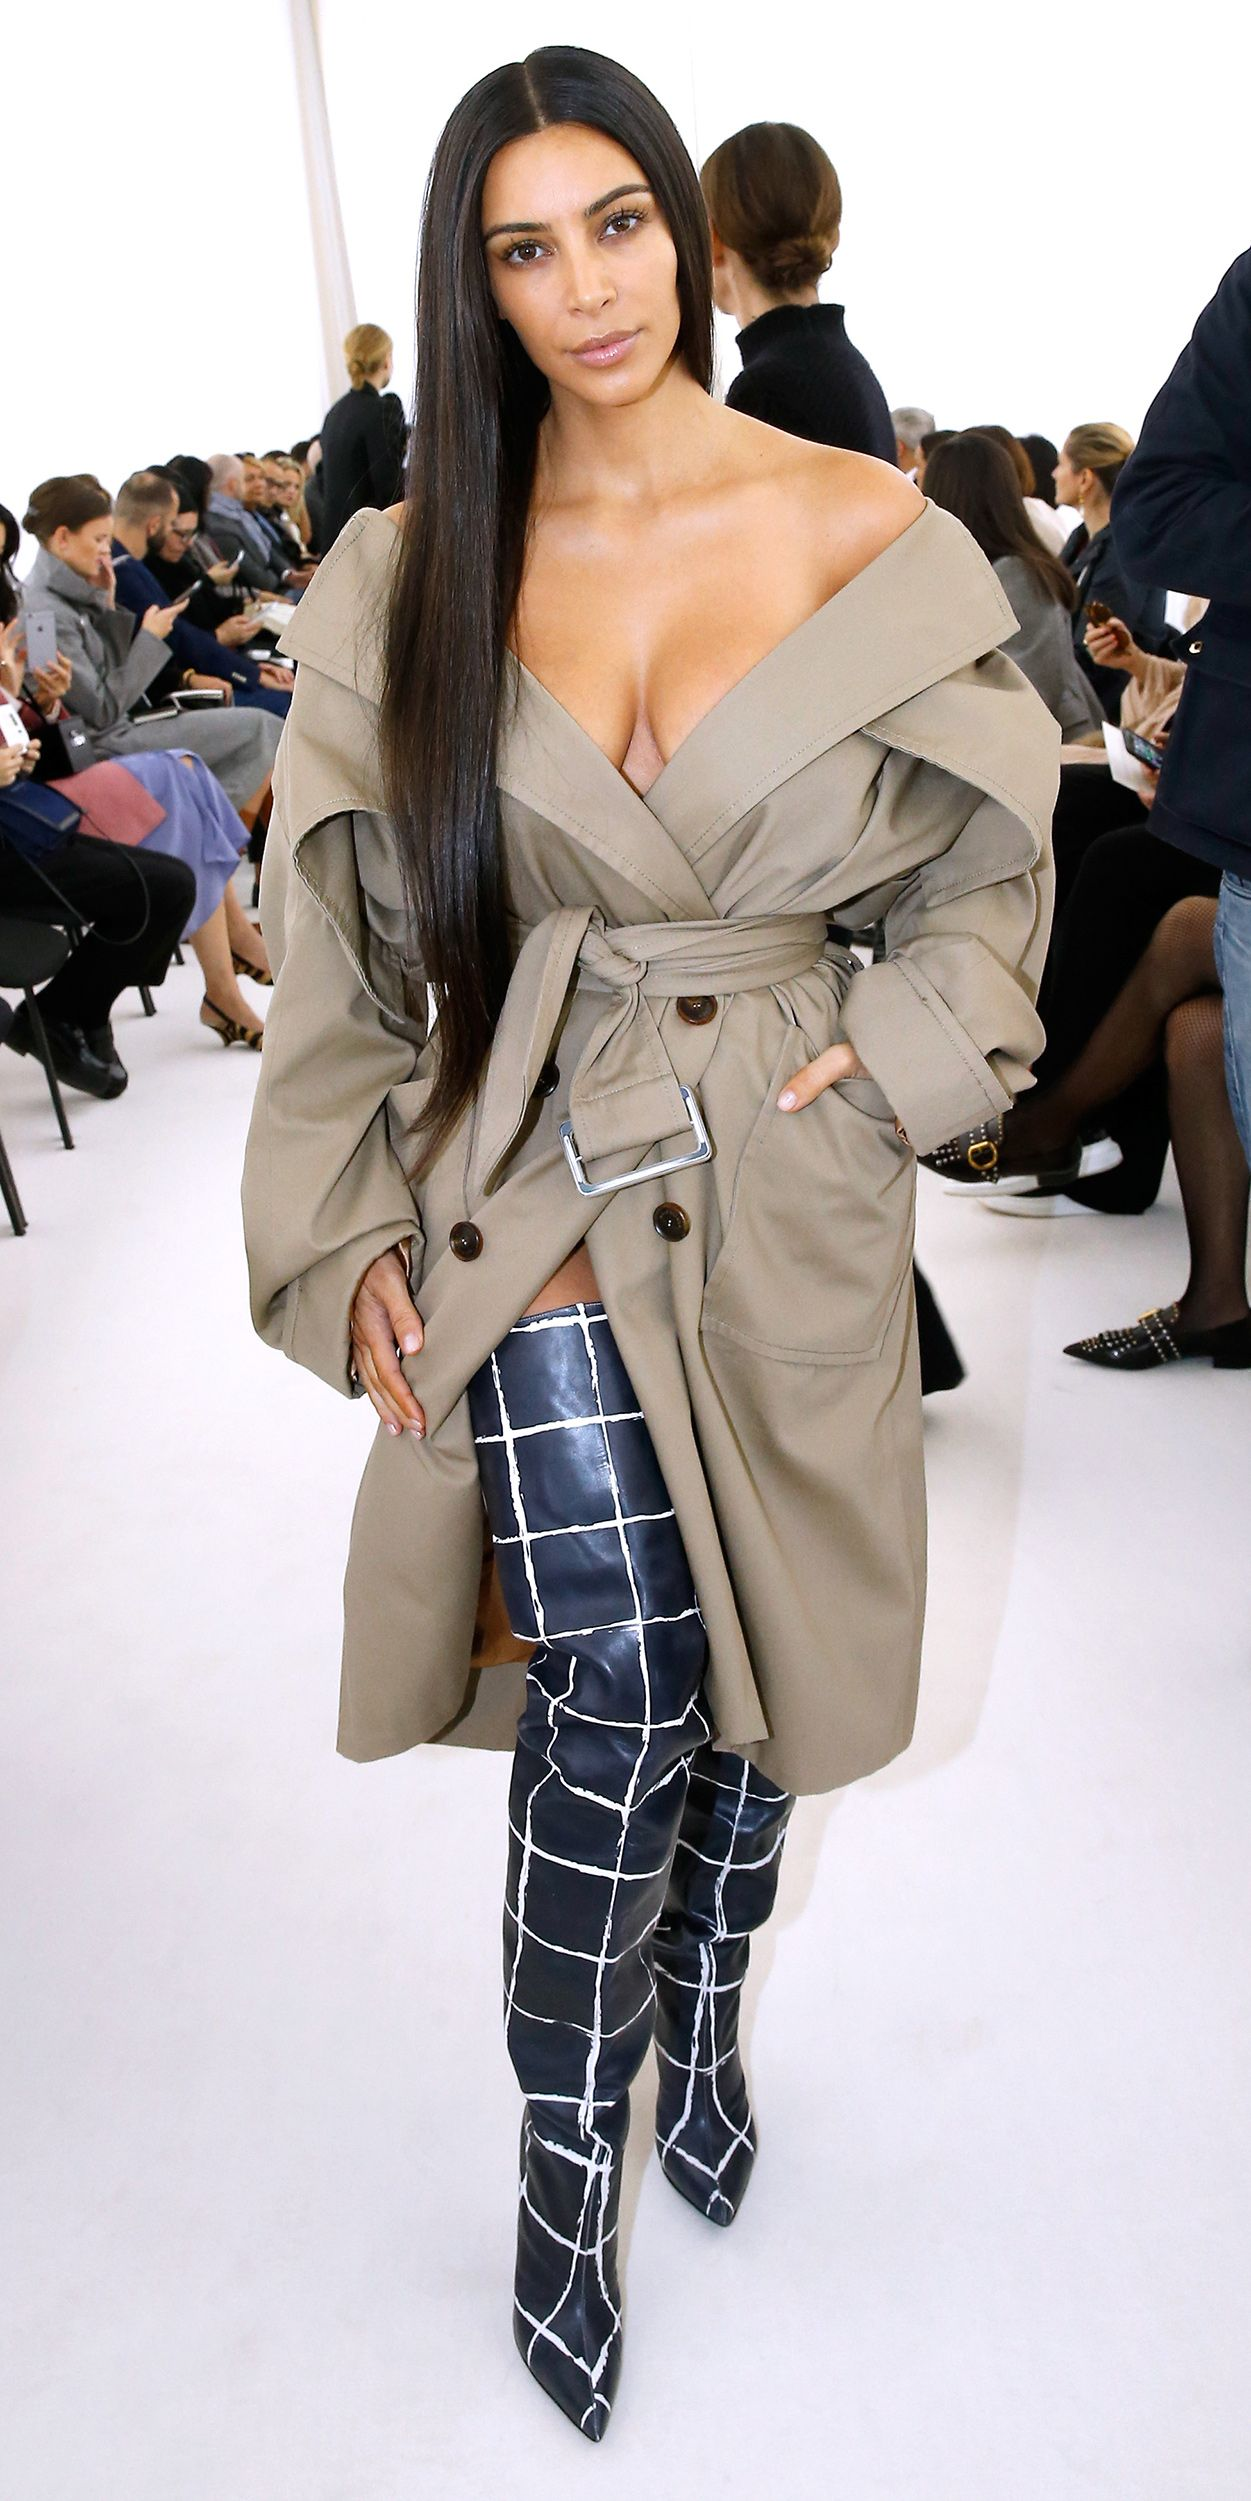 Kim look kardashian of the day forecast to wear for everyday in 2019